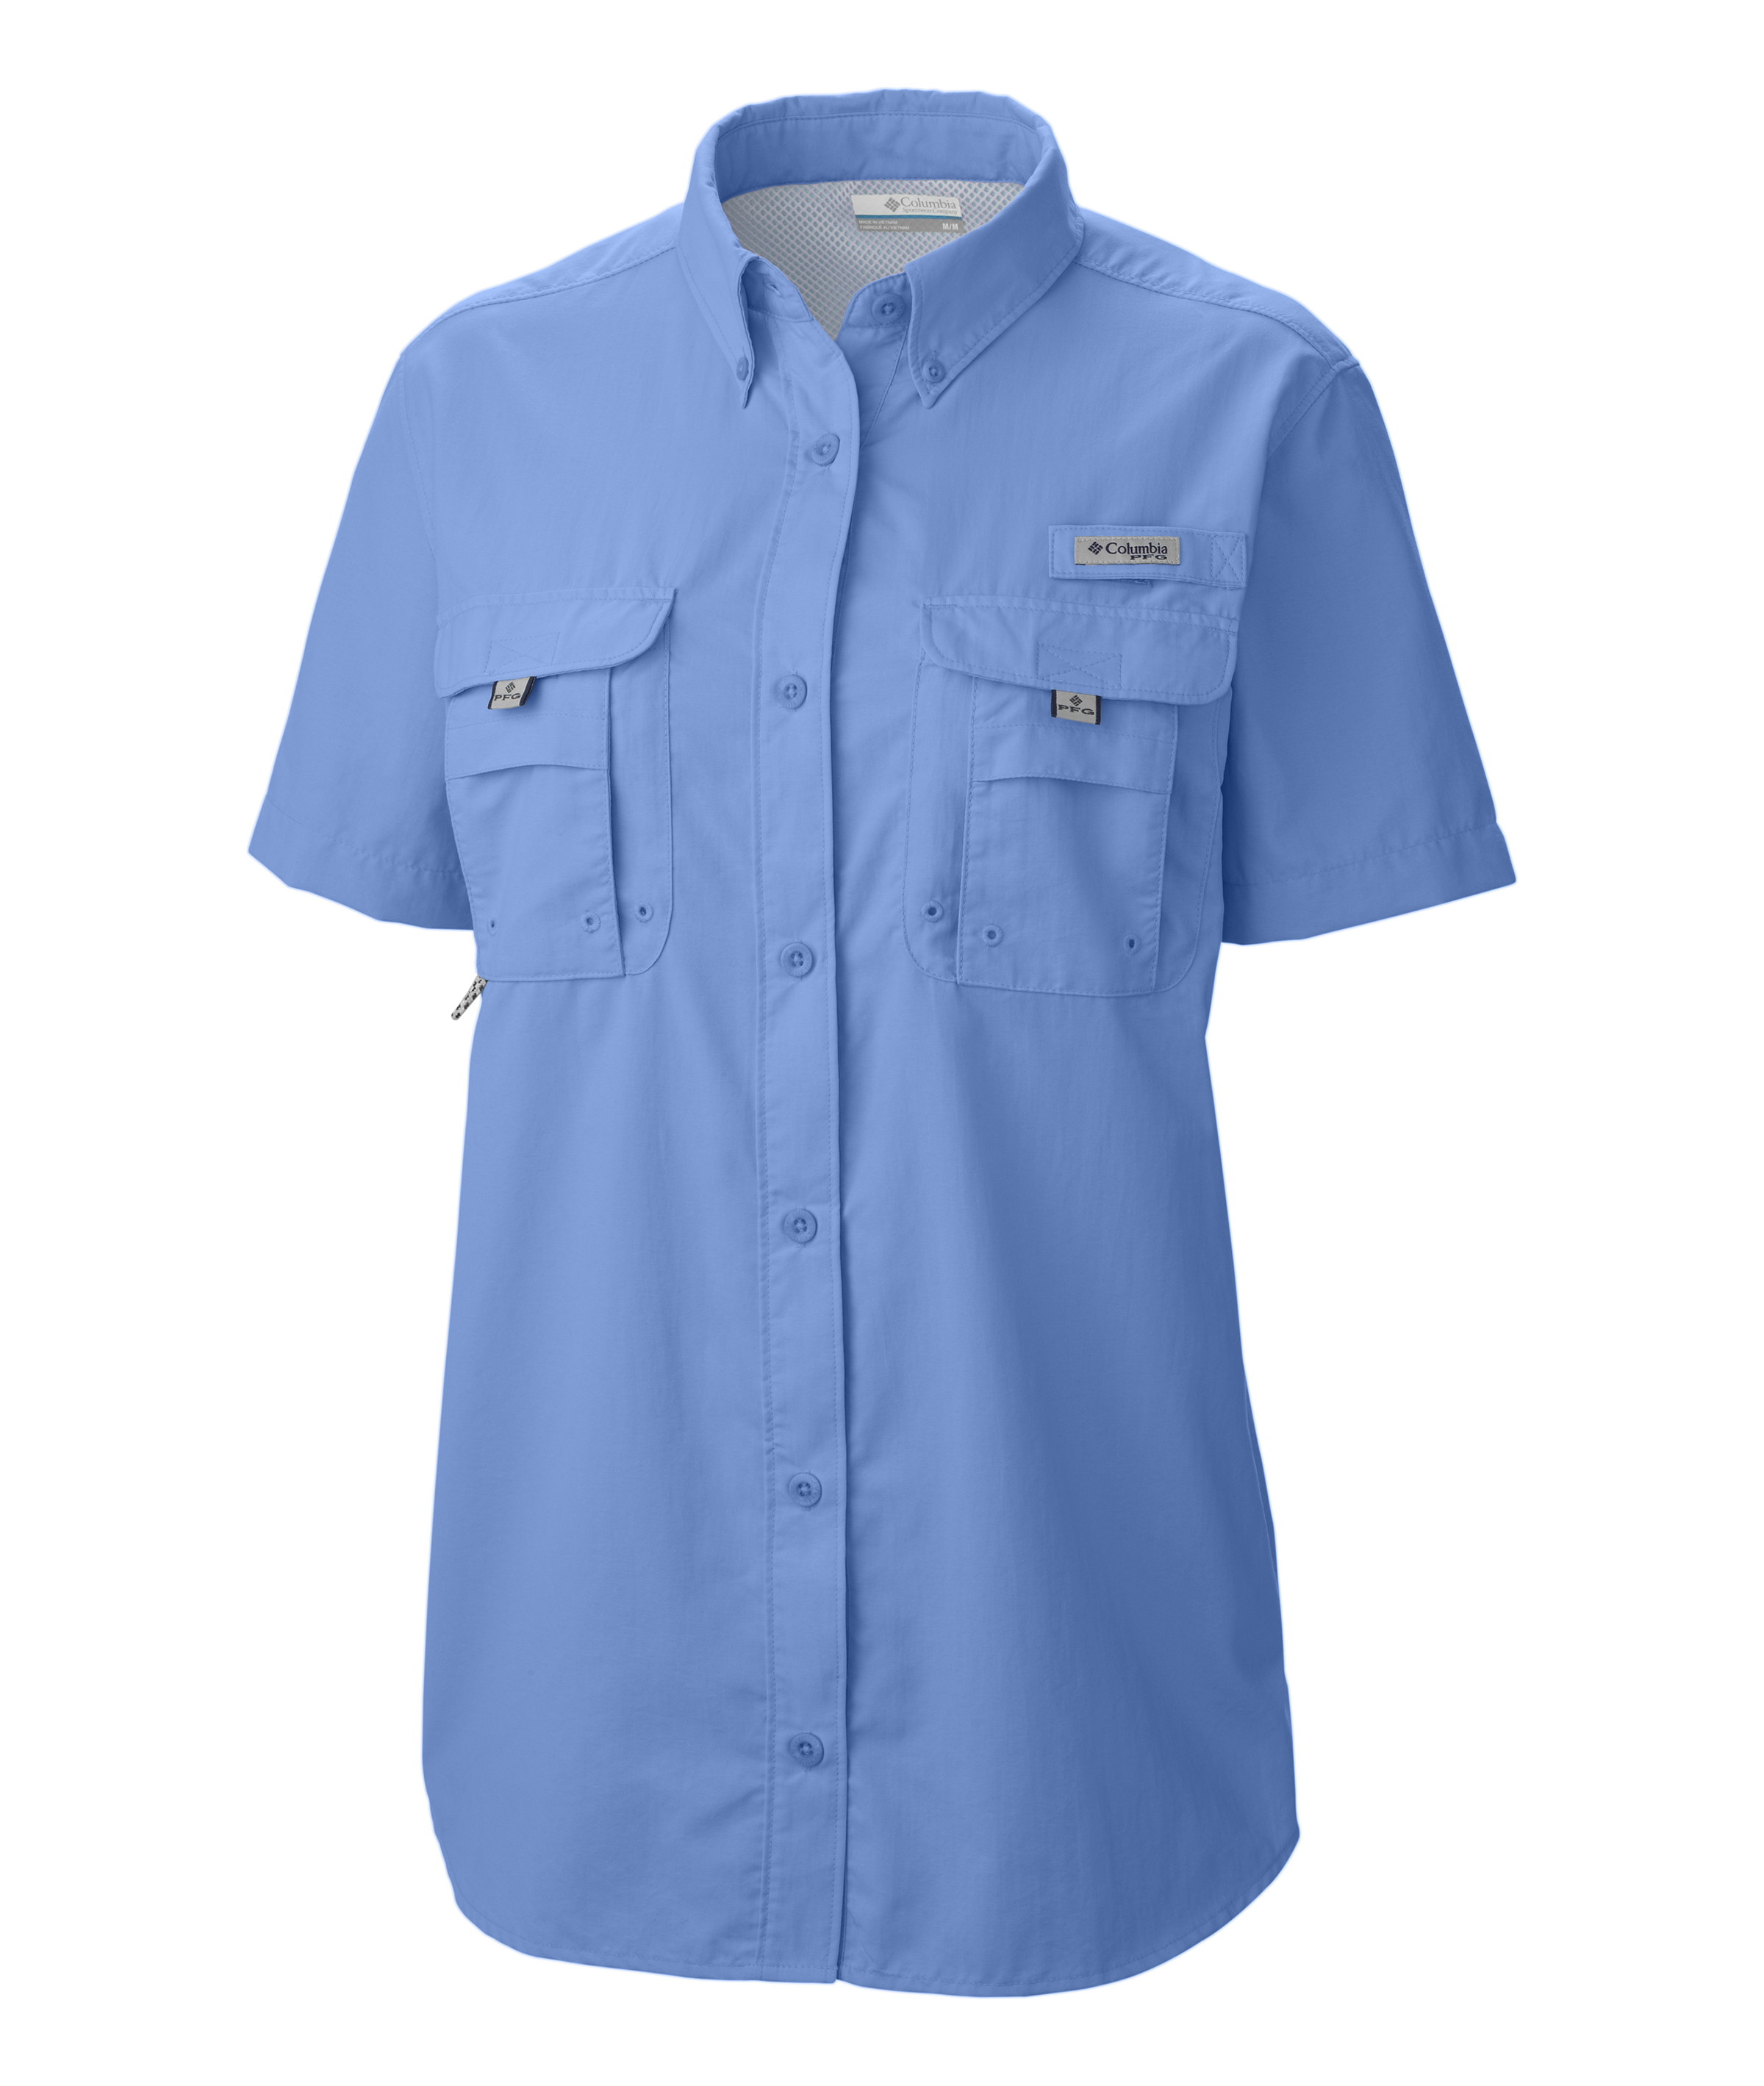 c9d4ccc5 Columbia Women's Bahama Short Sleeve Shirt. 7313.